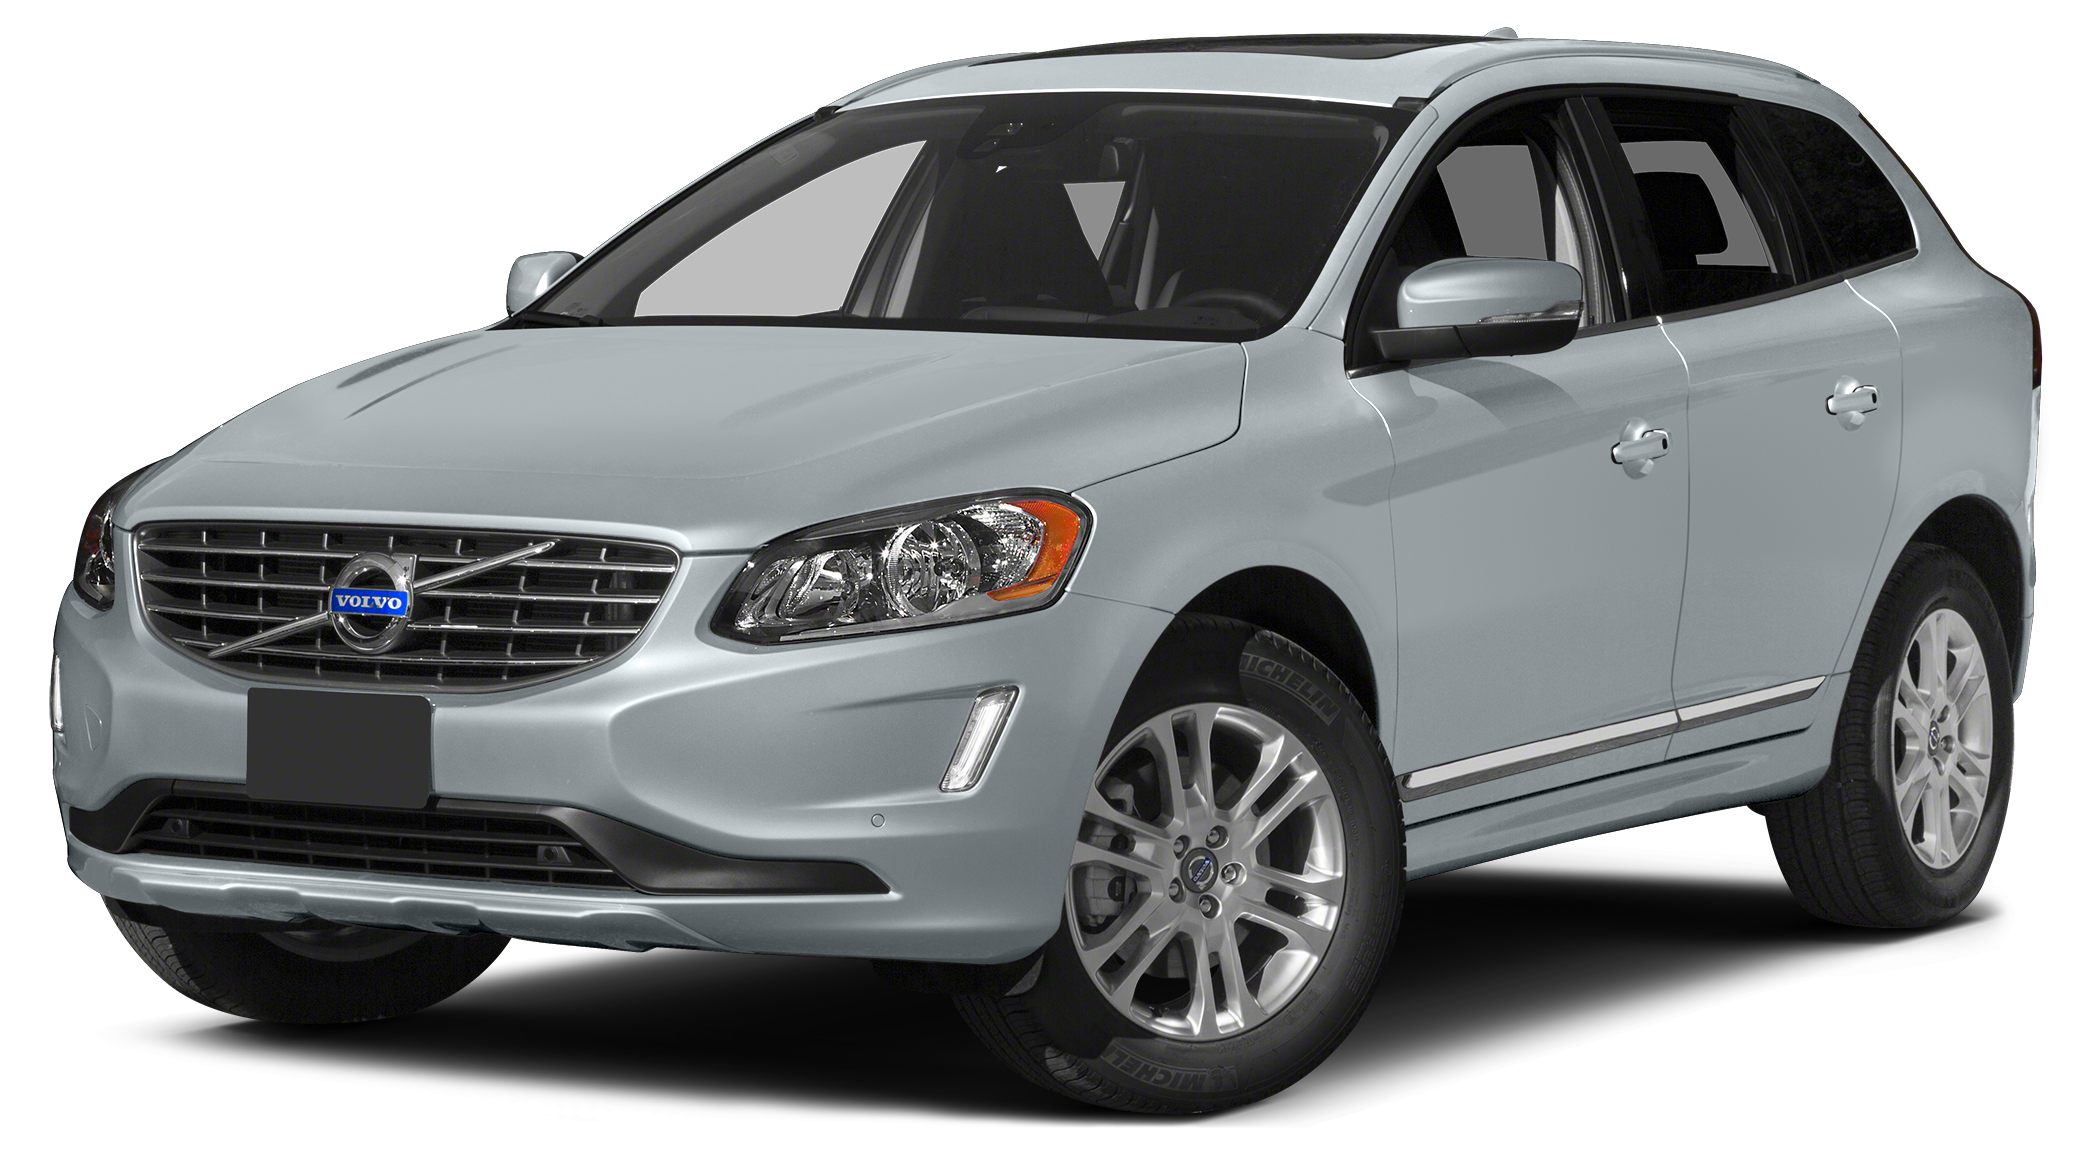 2015 Volvo XC60 T5 Premier Excellent Condition FUEL EFFICIENT 31 MPG Hwy24 MPG City Leather Na